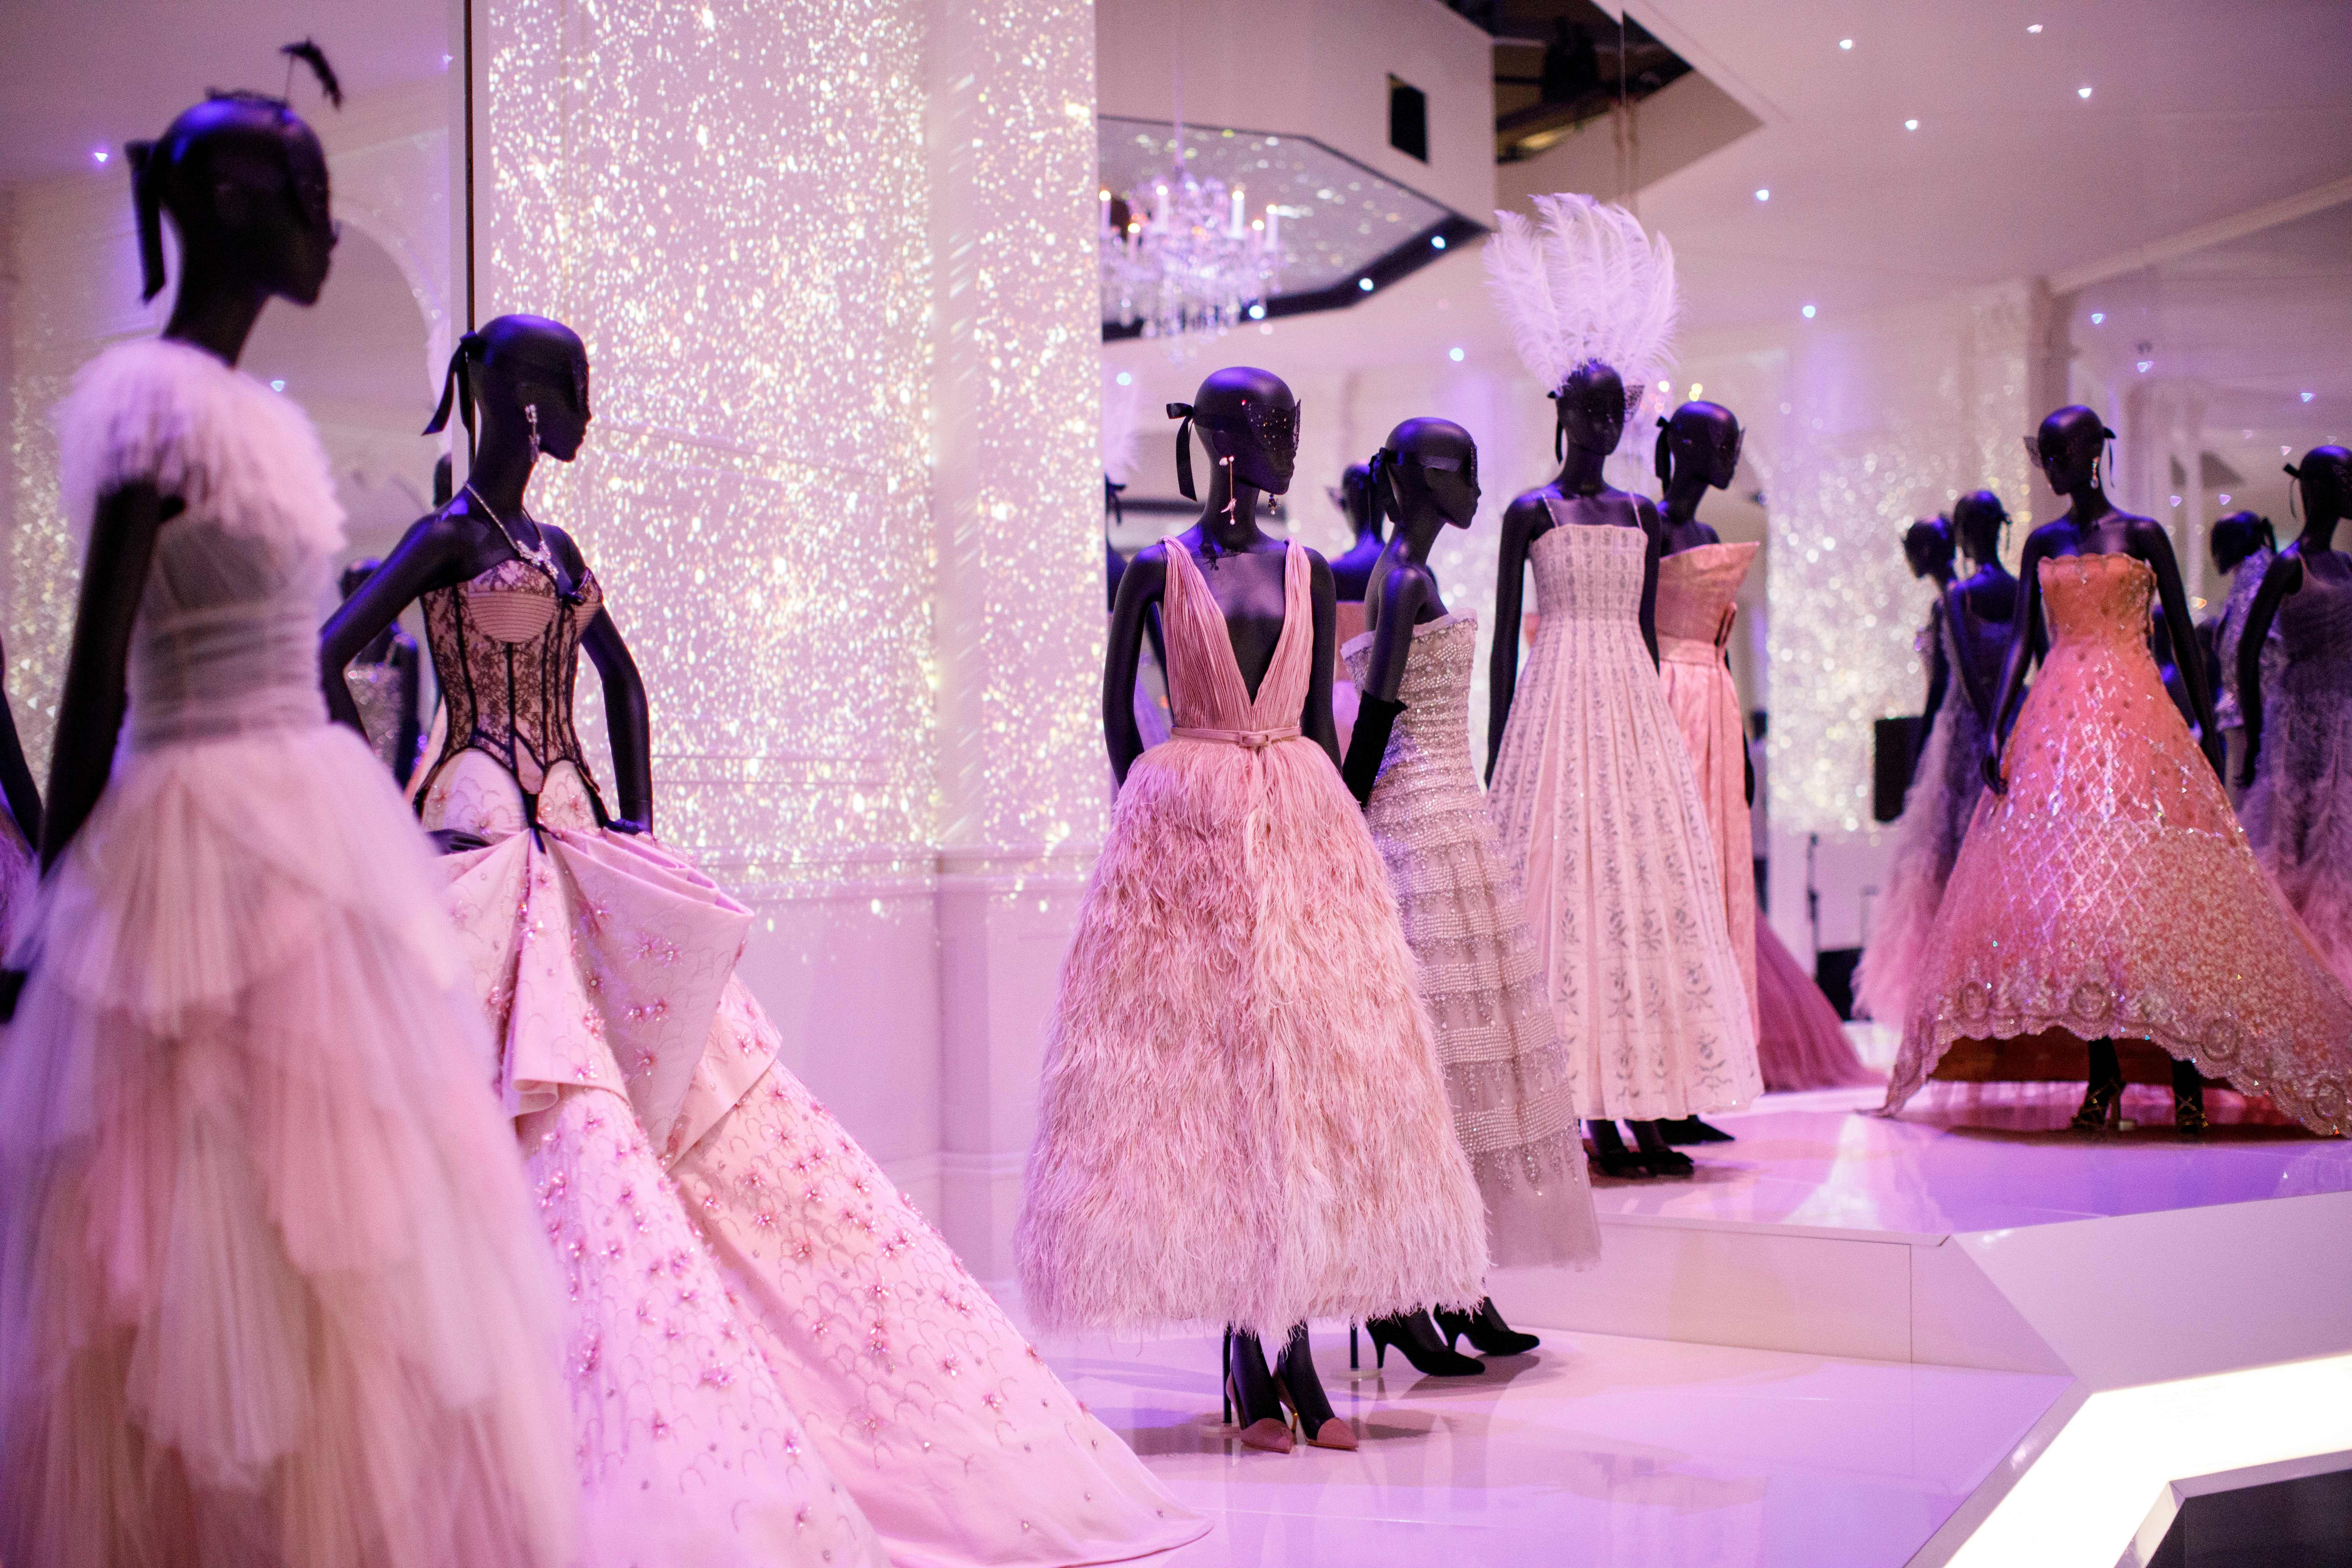 The Most Iconic Fashion Exhibits Of All Time